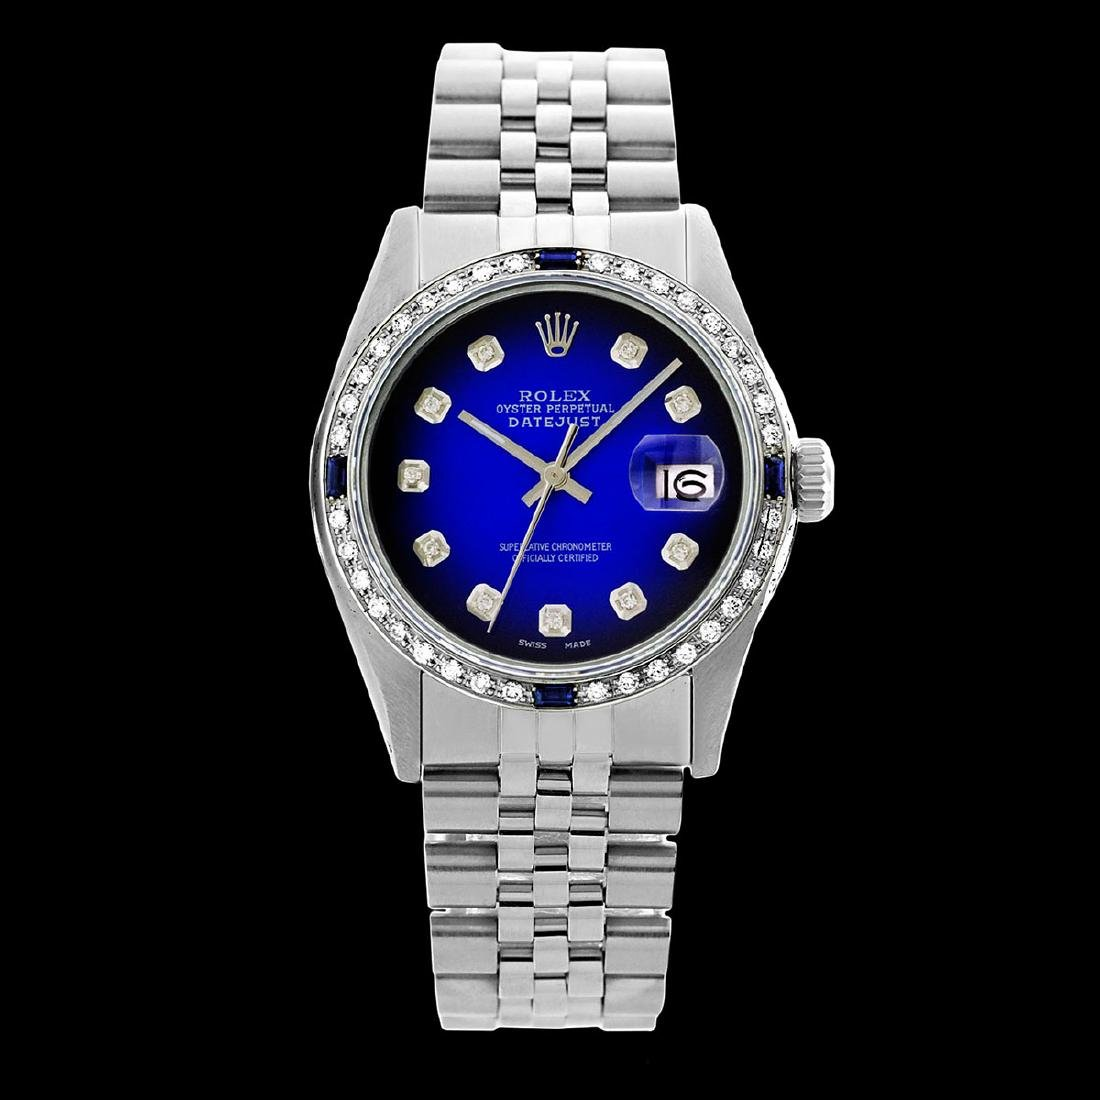 Rolex Men's Stainless Steel, QuickSet, Diam Dial & - 2